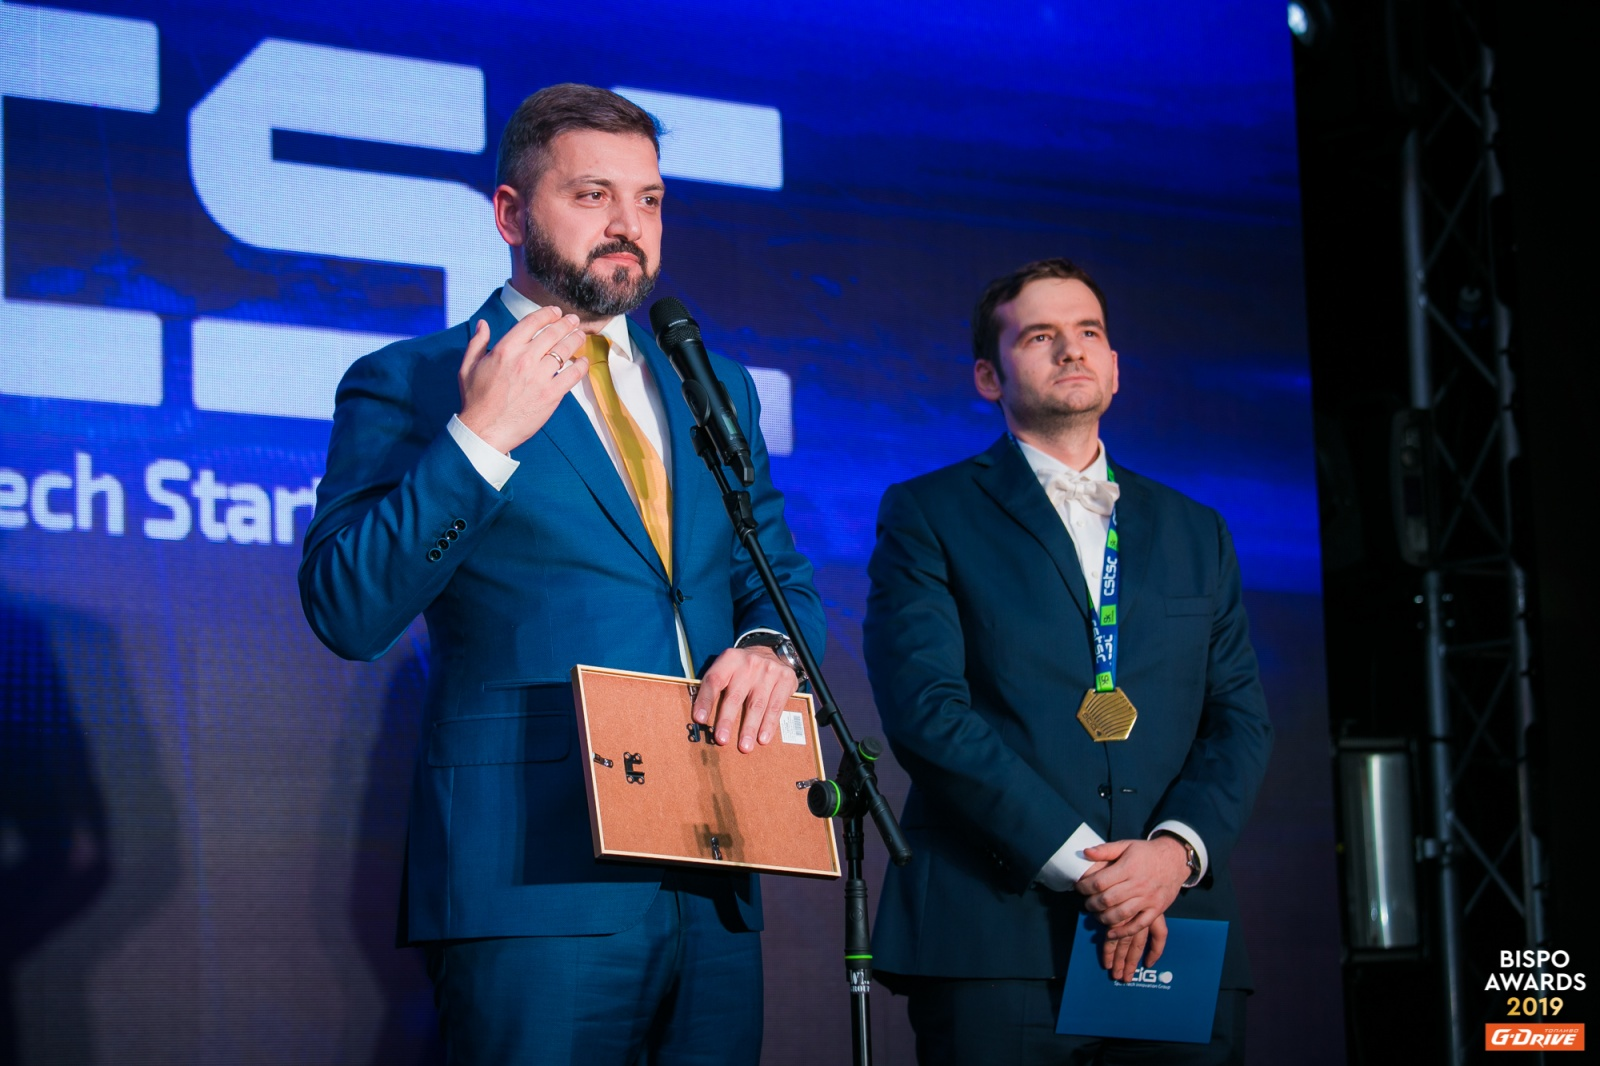 15 наград для спортивно-технологических стартапов на CSTSC от Sports tech innovation group - 1